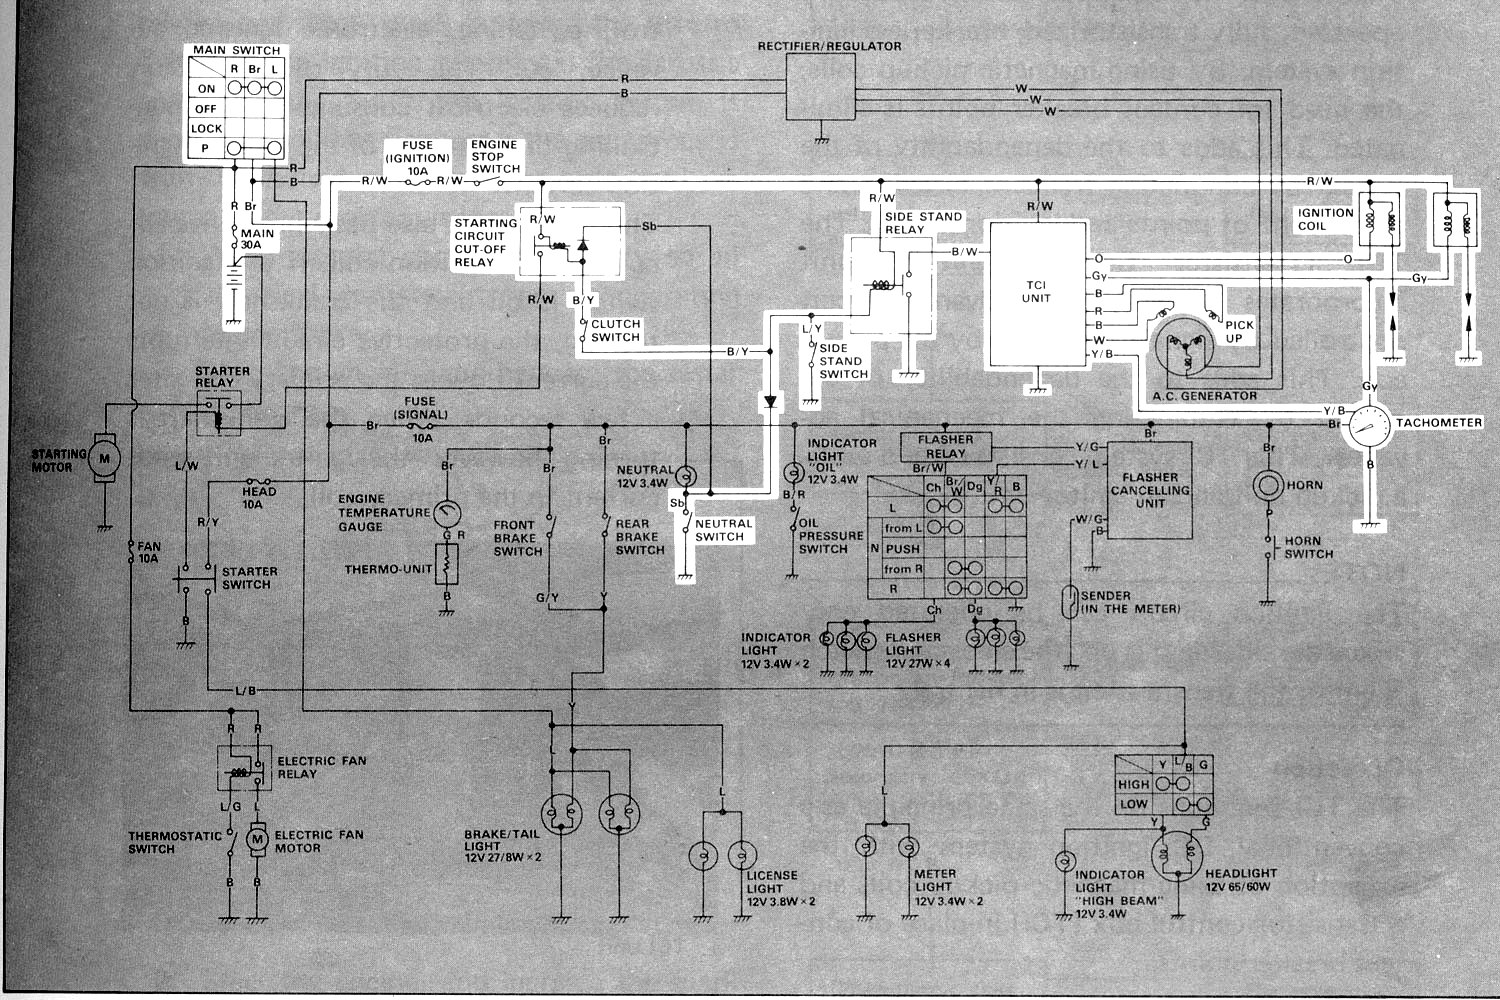 Honda Wave 100 Electrical Wiring Diagram Pdf 44 78 Yamaha Dt Vision Ignition Images 0040 At